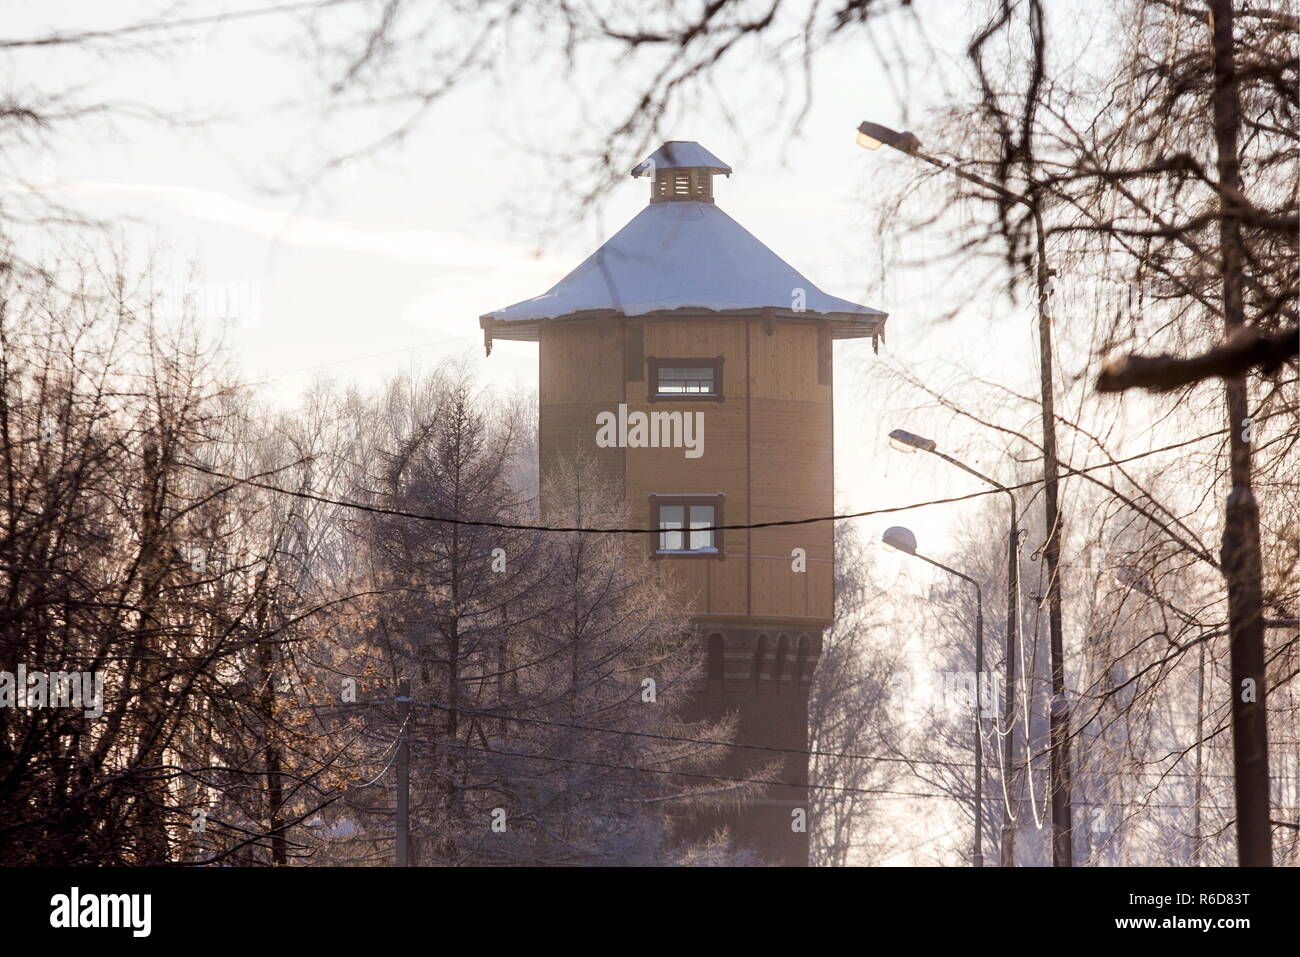 TOMSK, RUSSIA - DECEMBER 5, 2018: A former water tower transformed into a home by local resident, Alexander Lunev (not in picture), at Devyatnadstataya Gvardeiskaya Street in the city of Tomsk; the 120 years old former water tower measures some 25 metres in height and includes 6 storeys, an attic, and an observation platform. Danila Shostak/TASS - Stock Image